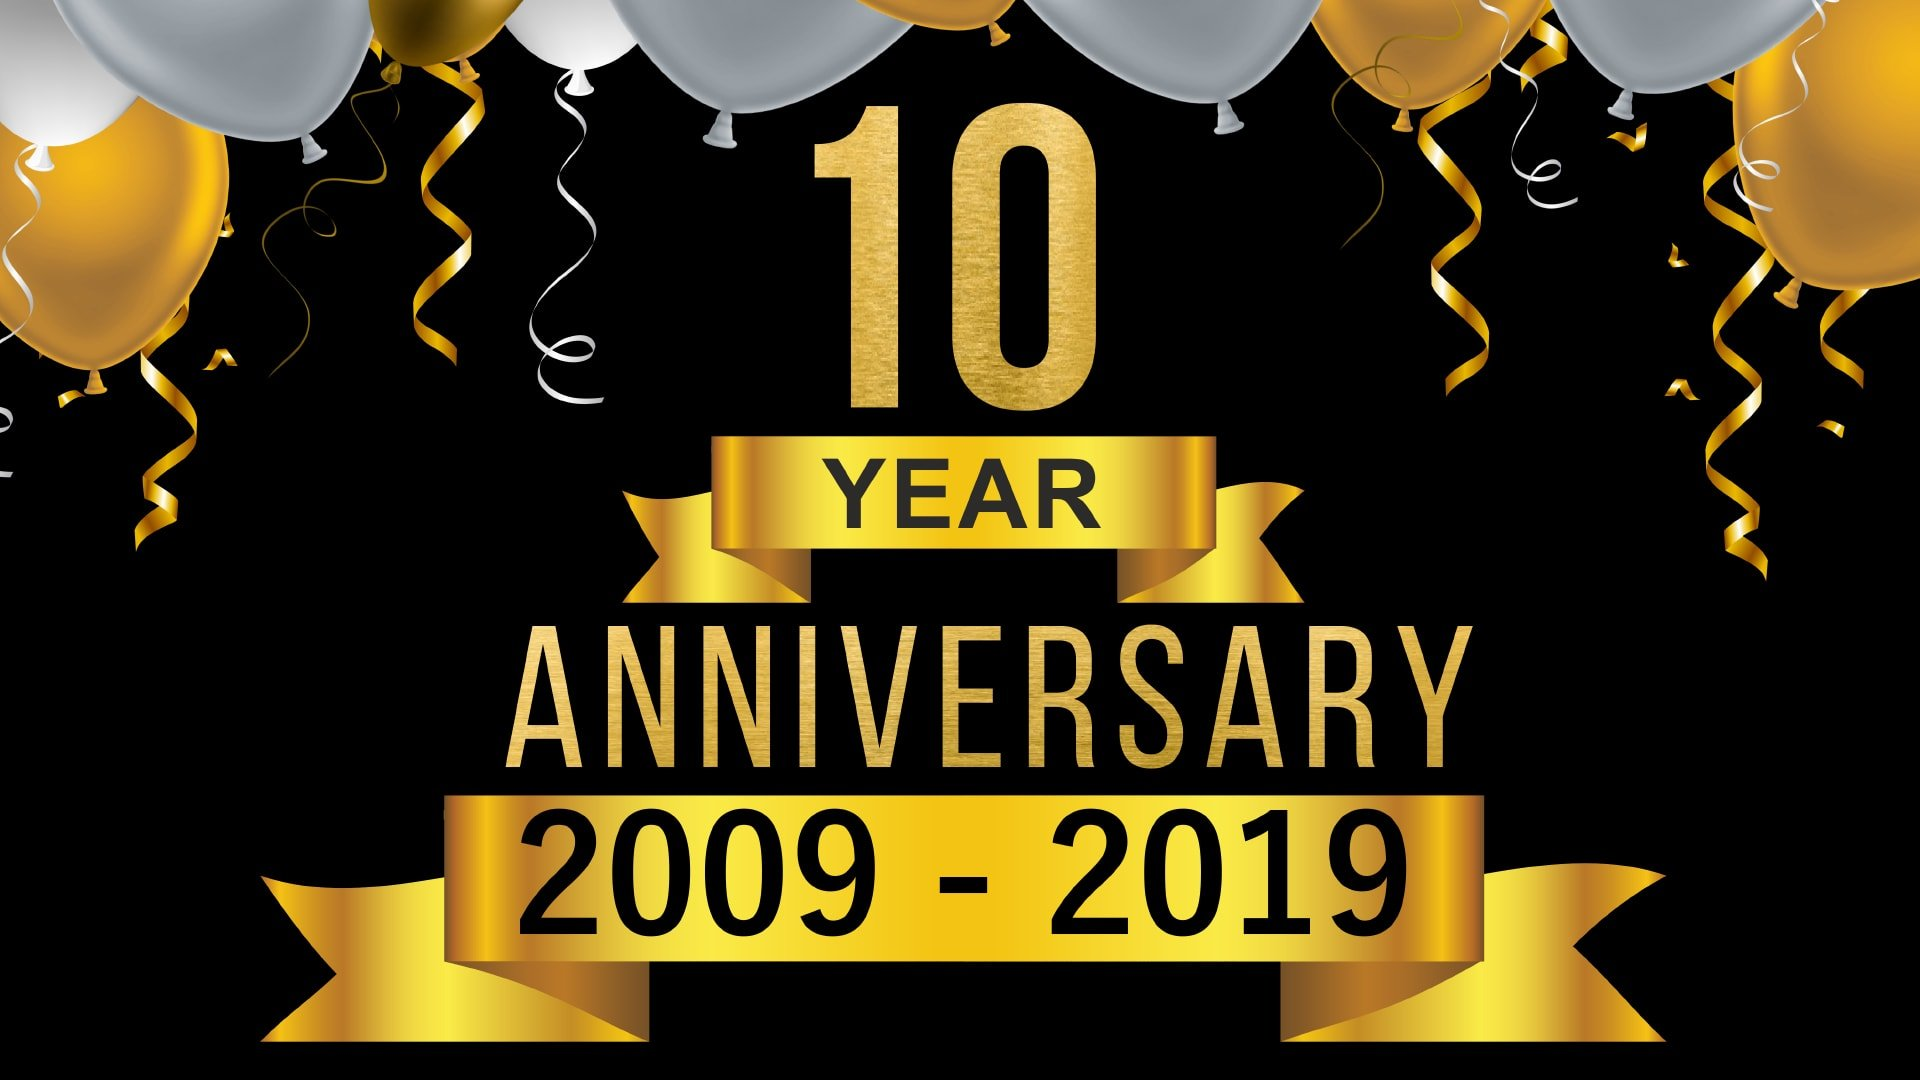 Celebrating 10 Years of Business